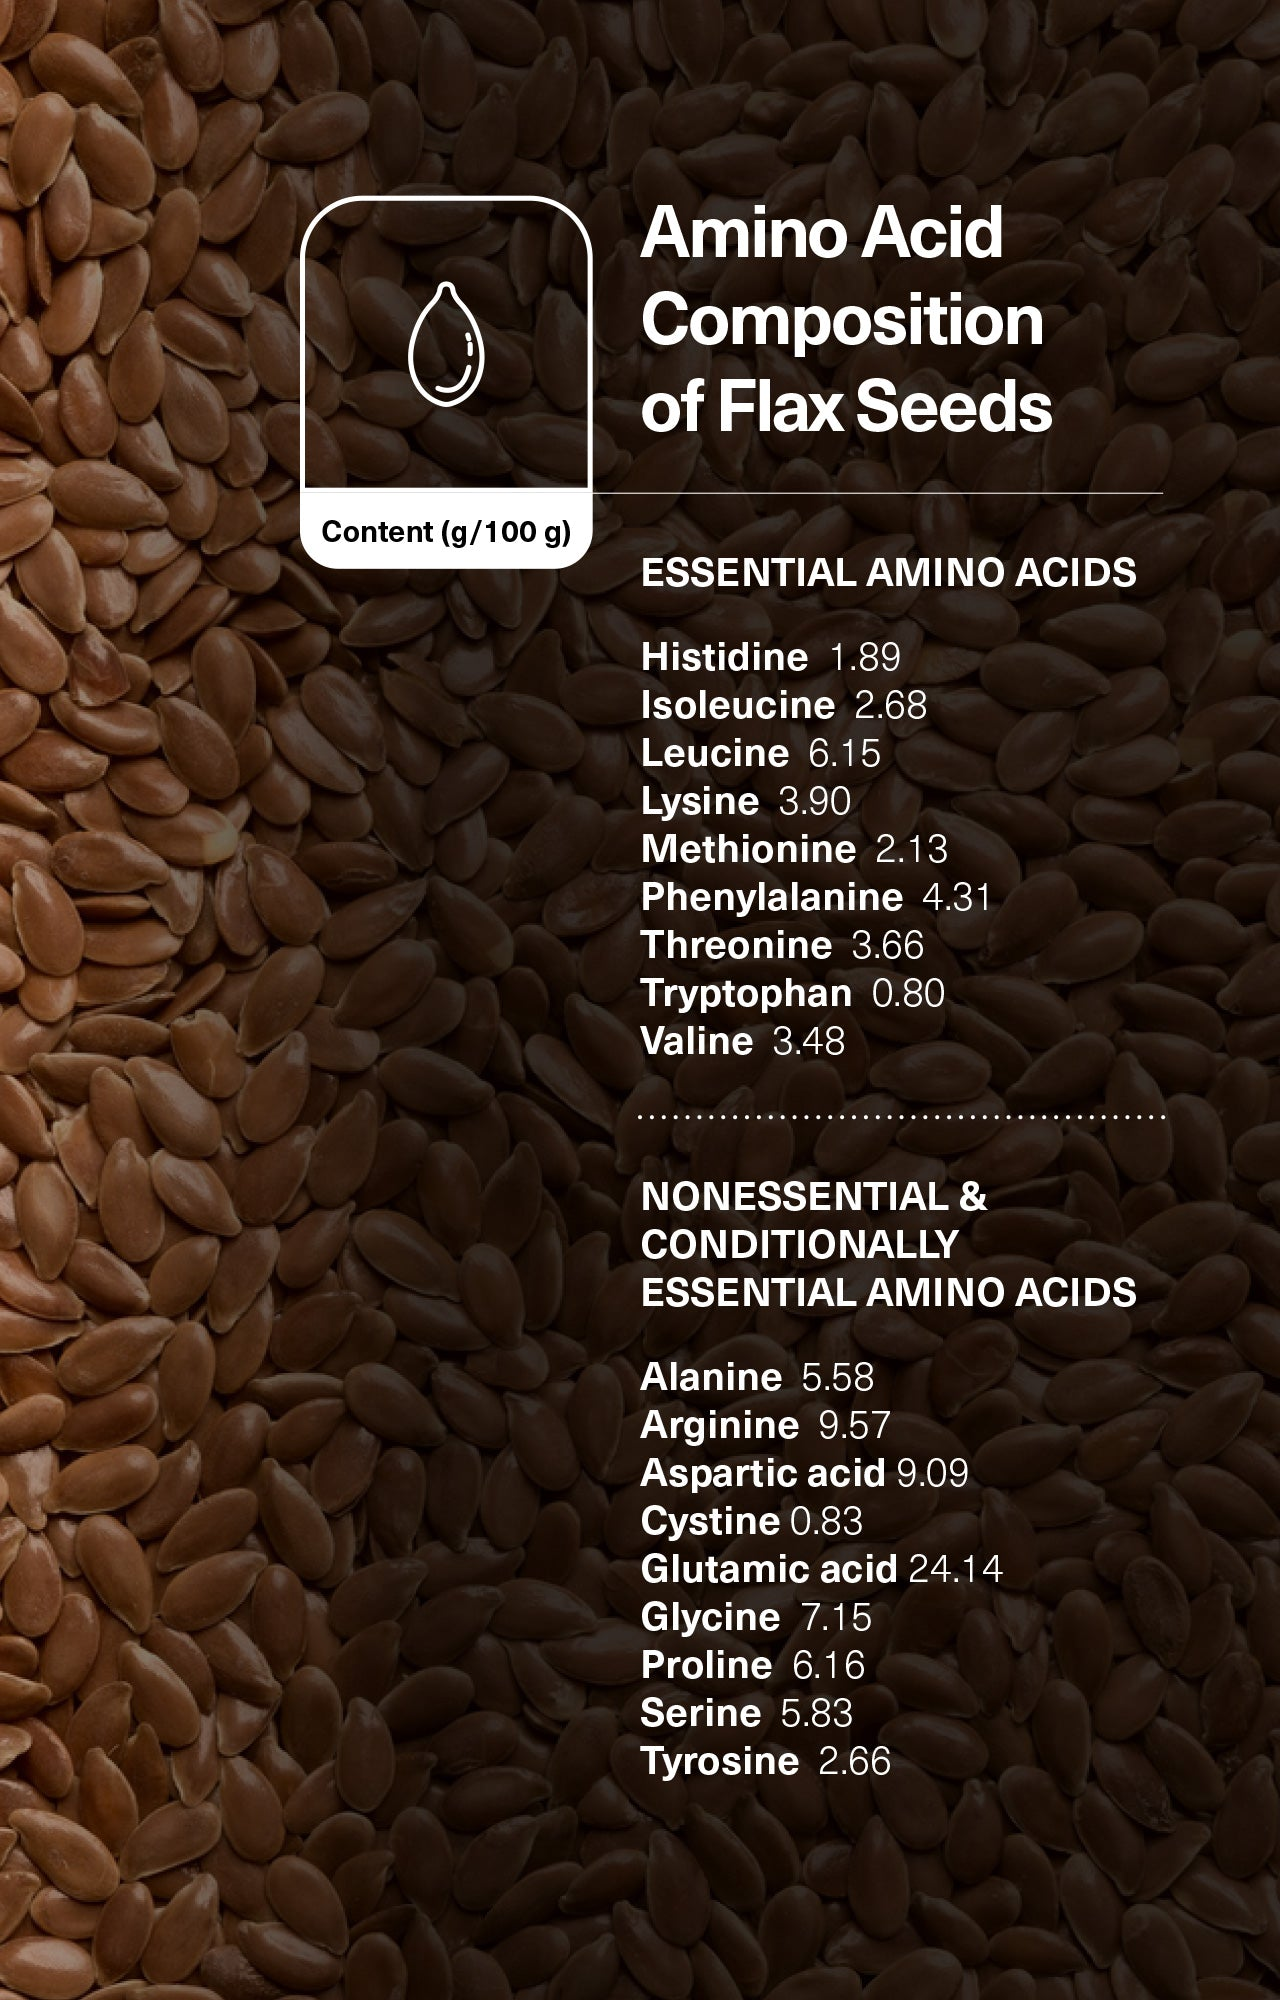 Amino Acid Composition of Flax Seeds